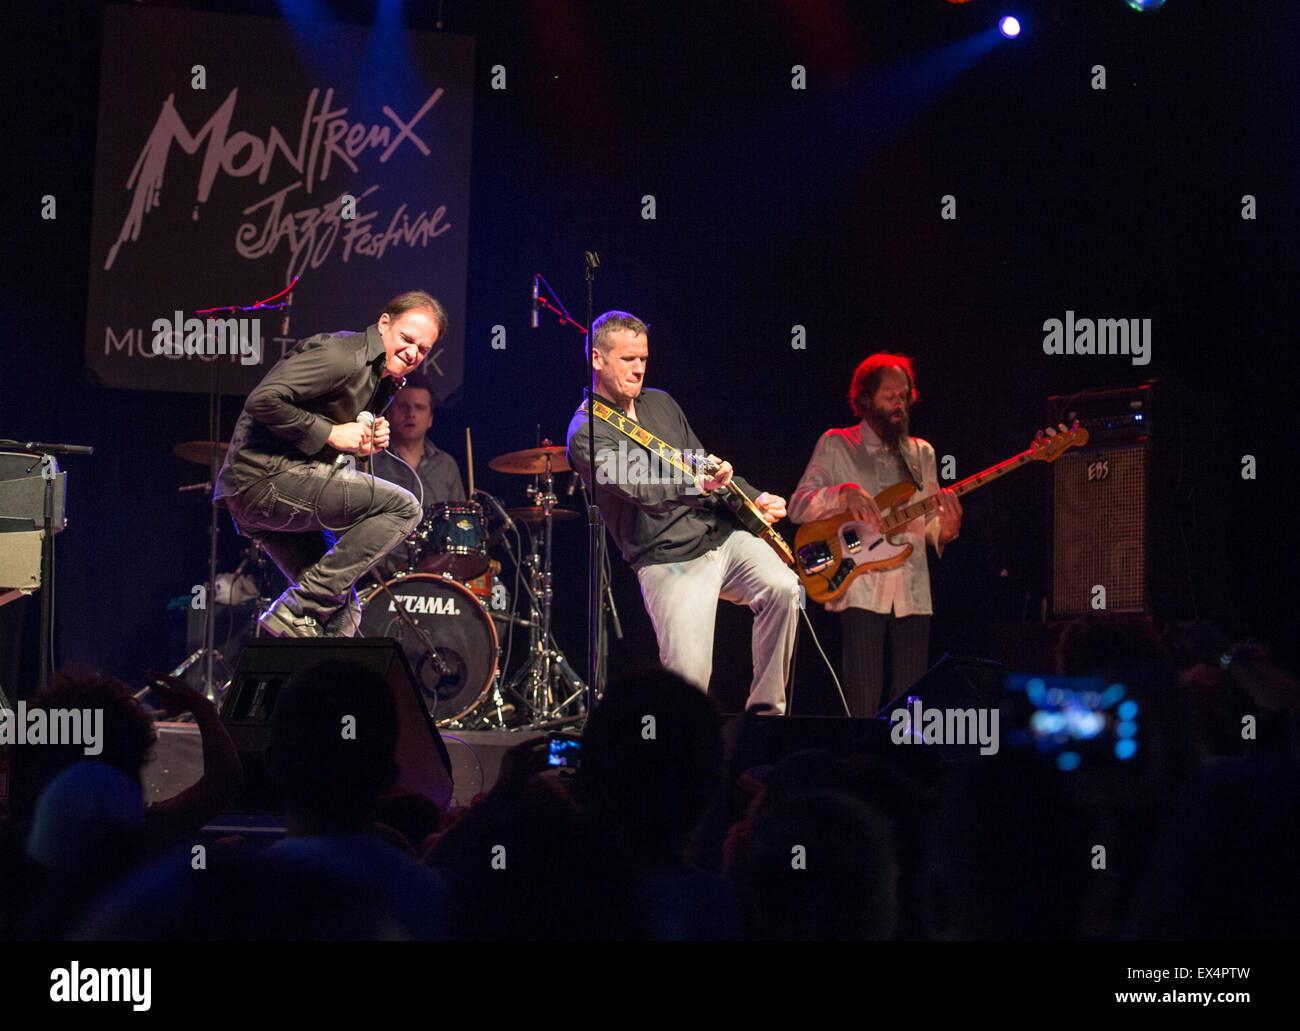 Montreux Jazz Festival 2015 >> Montreux Switzerland 6th July 2015 Members Of The Doors Revival